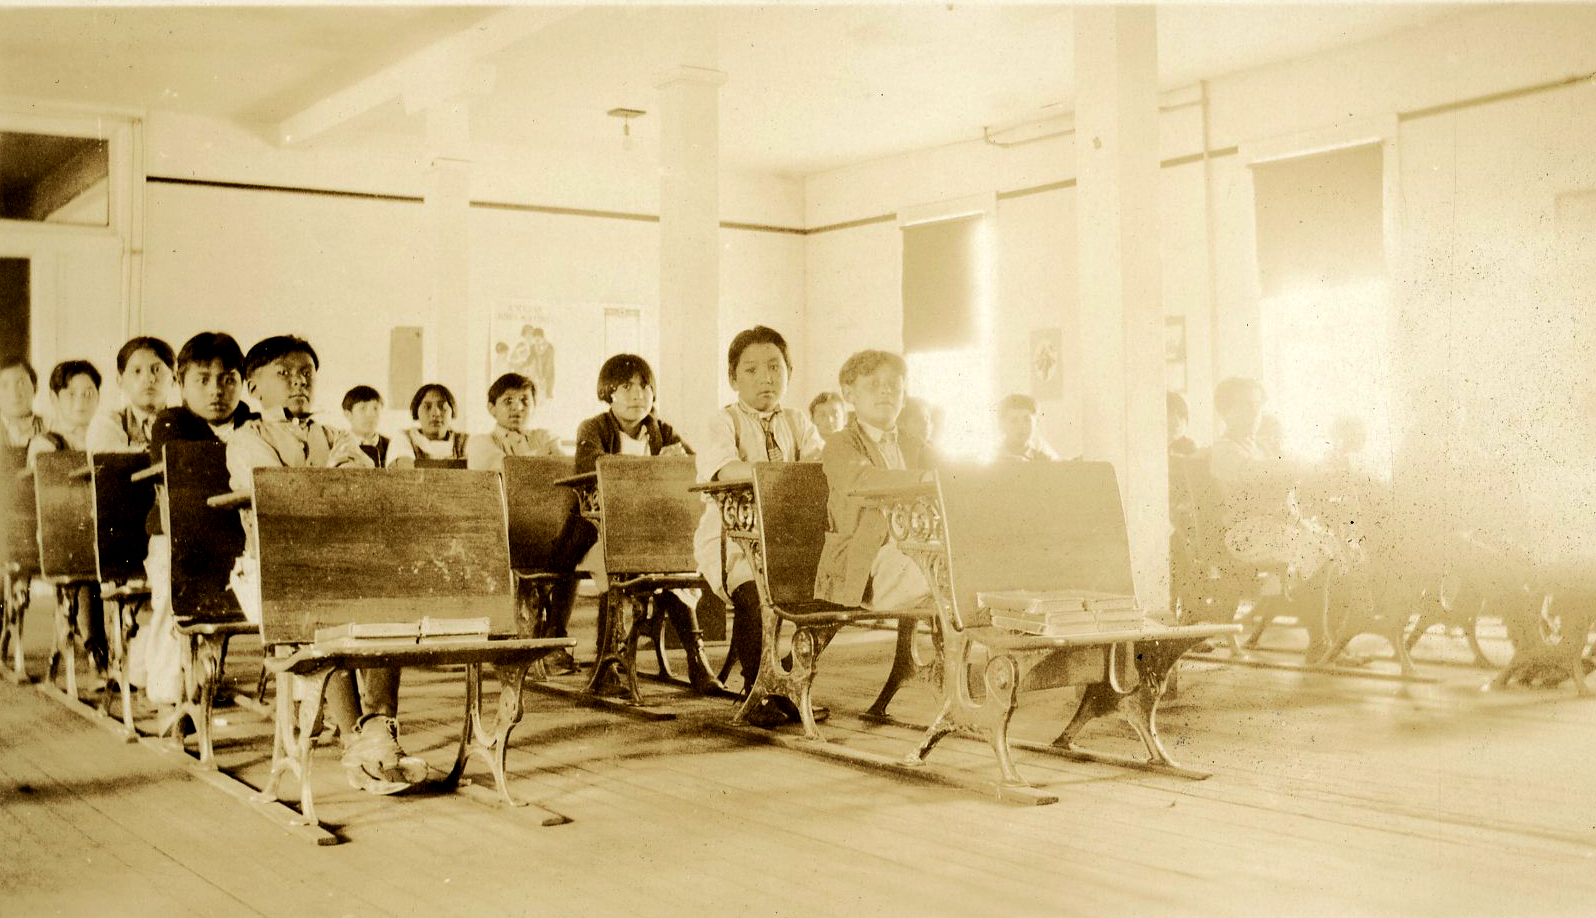 Chemawa students in their desks, c.1928. Courtesy Oregon Hist. Soc. Research Lib., Alice Judd Coll. 492.